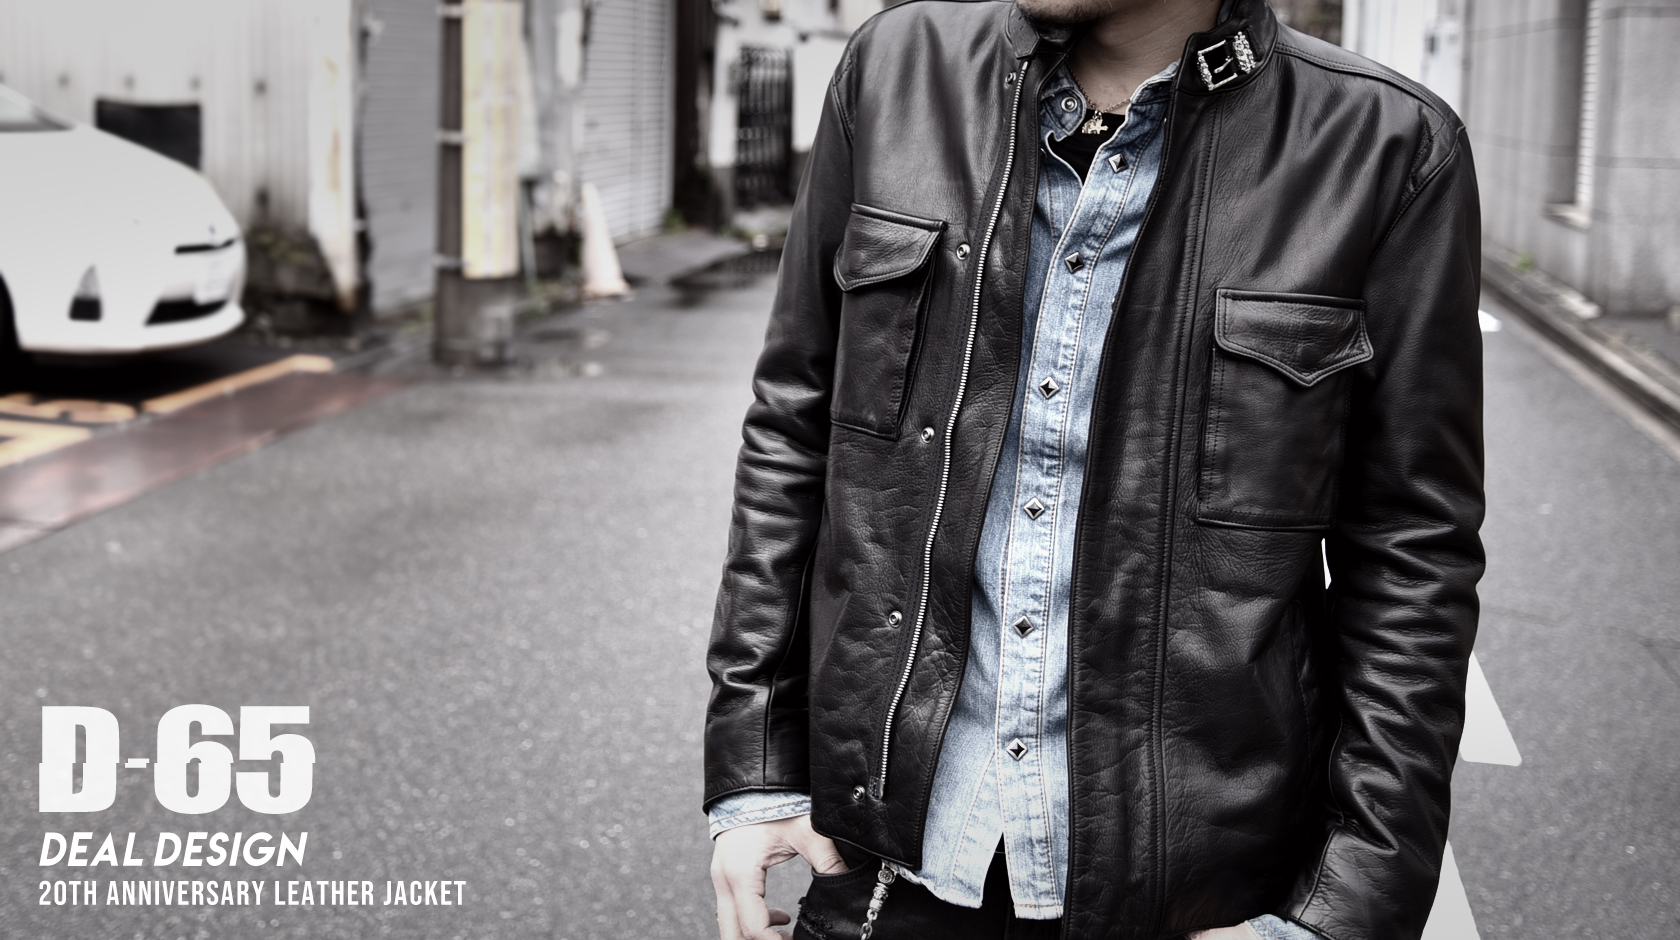 20th LEATHERJACKET D-65